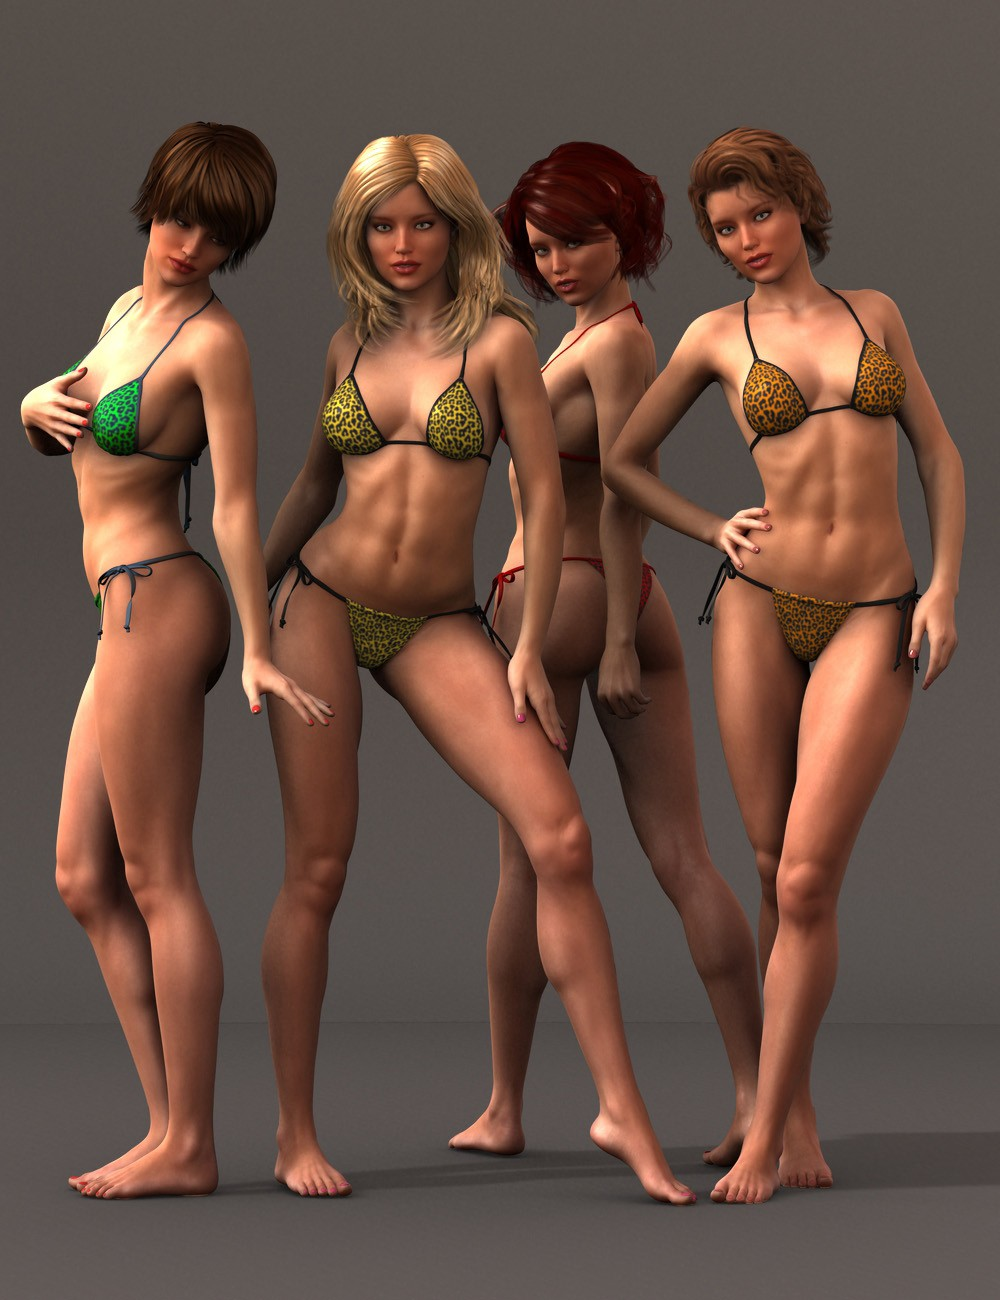 Free 3dnaked girls picture download cartoon movies